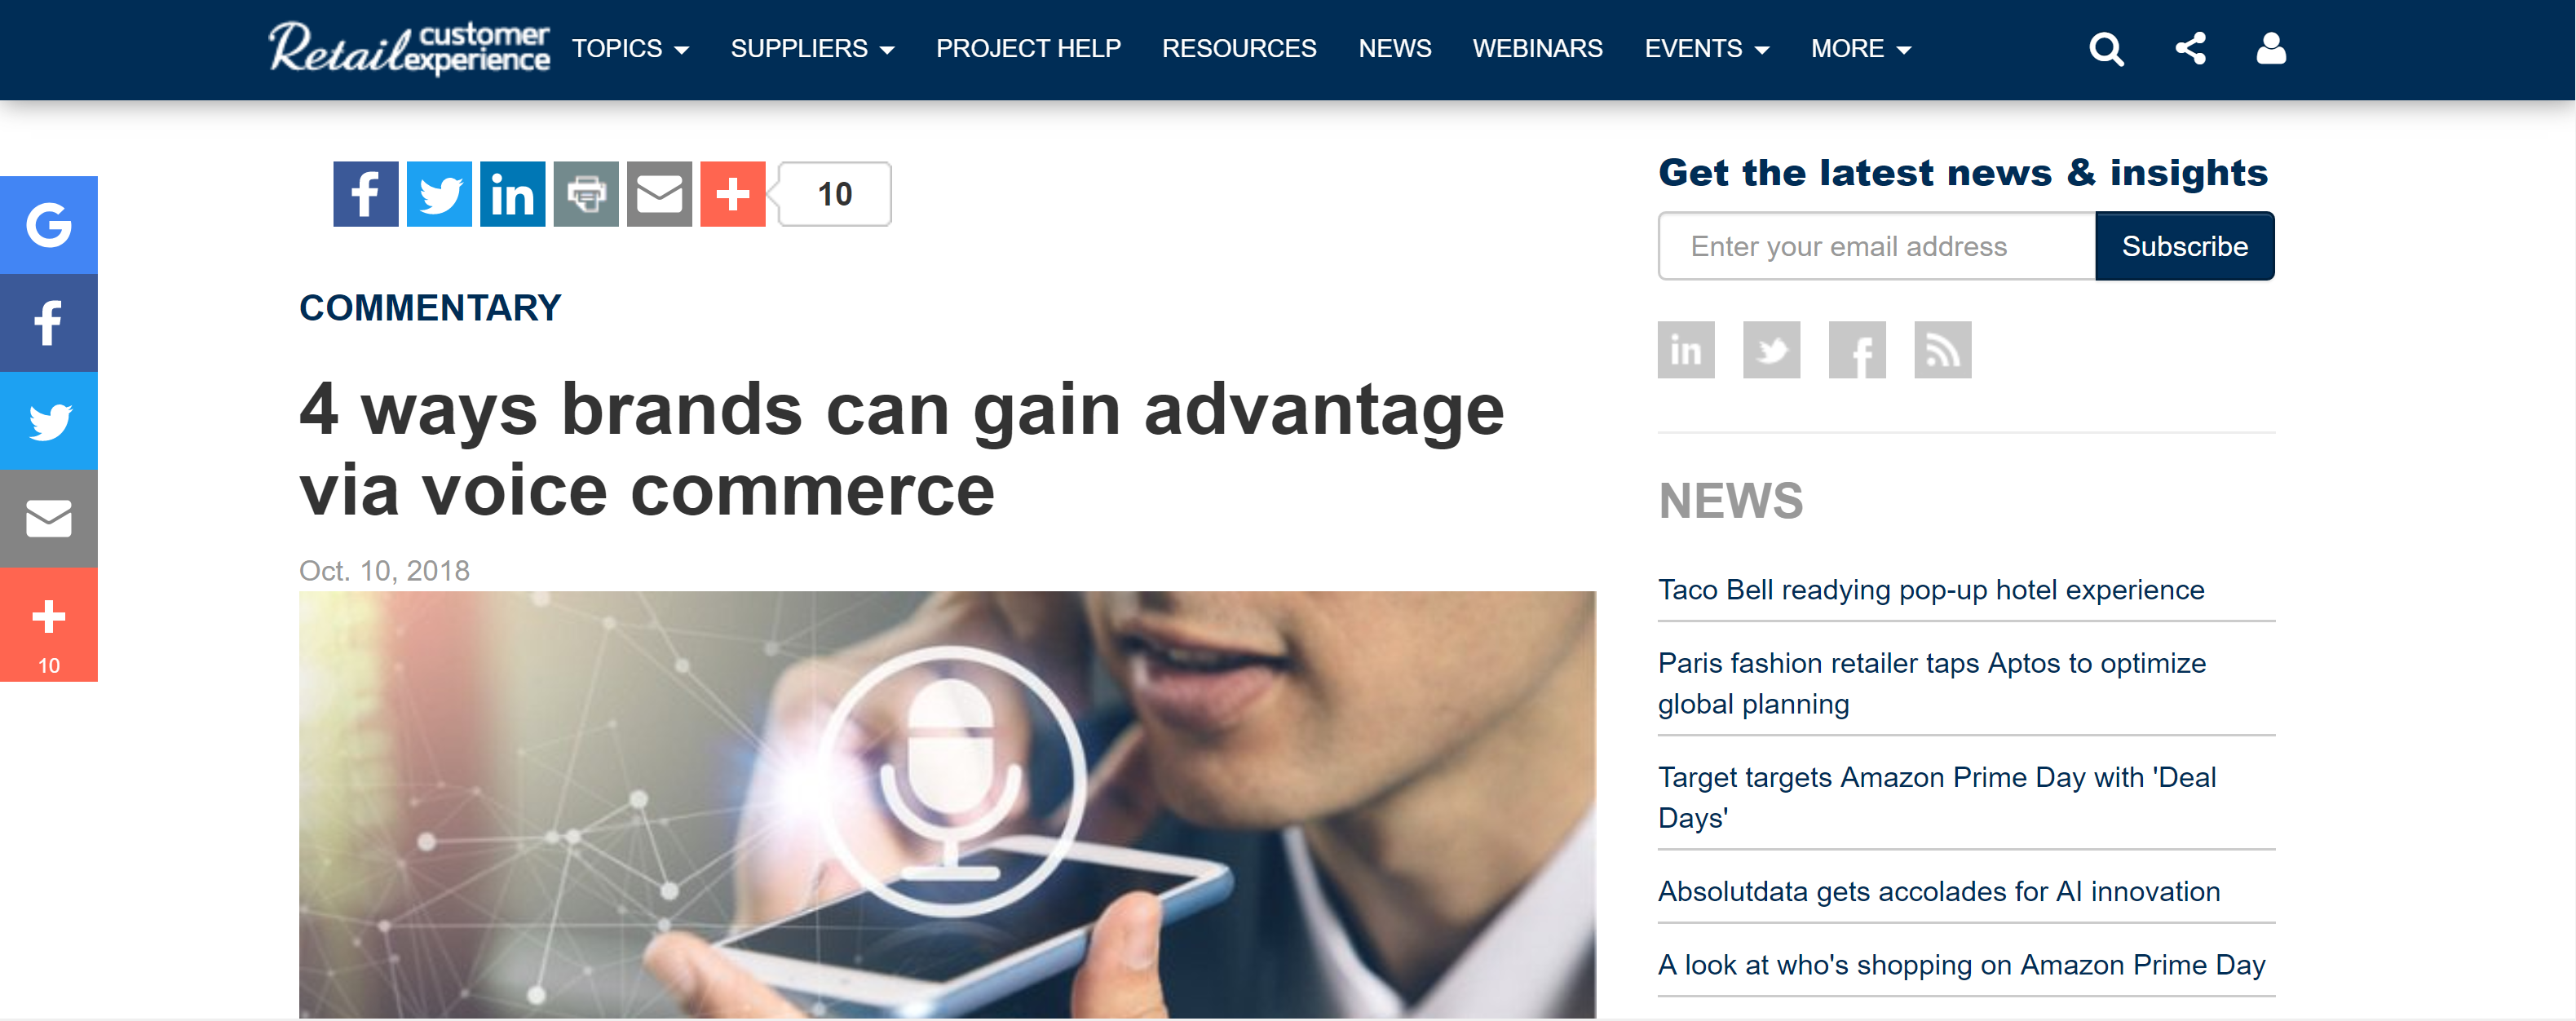 Retail Customer Experience - 4 Ways Brands Can Gain Advantage Via Voice Commerce by Tabatha Patterson